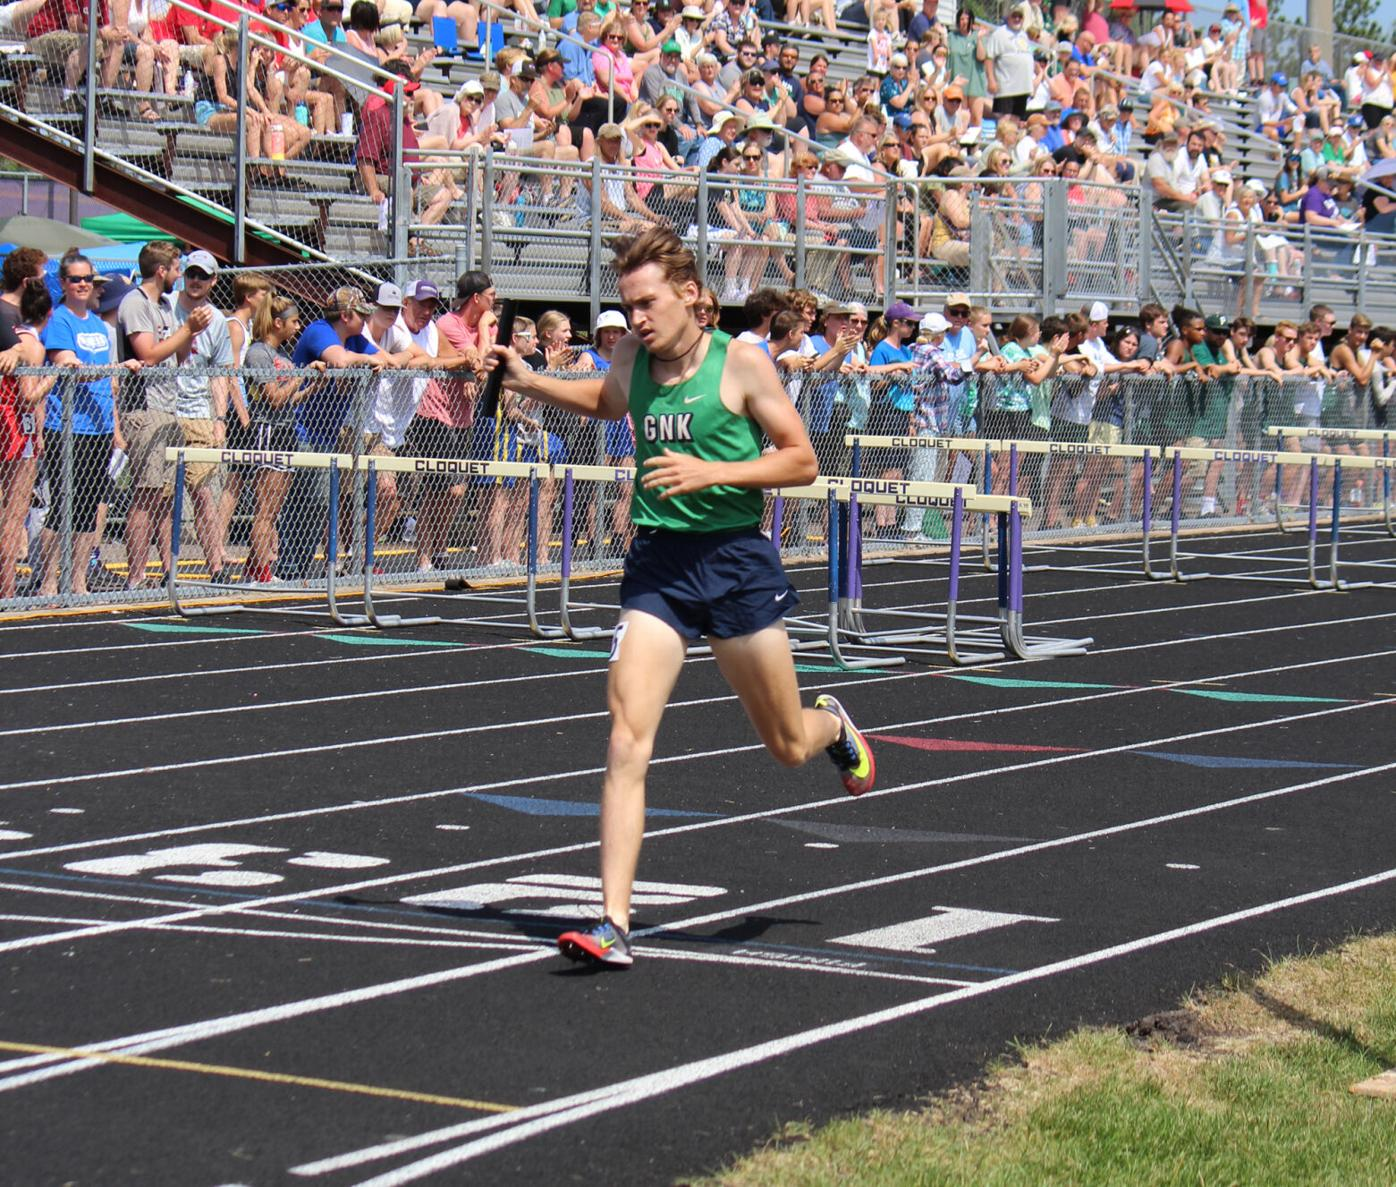 GNK wins 7A Track and Field title; Stocke, Skelton each win two events